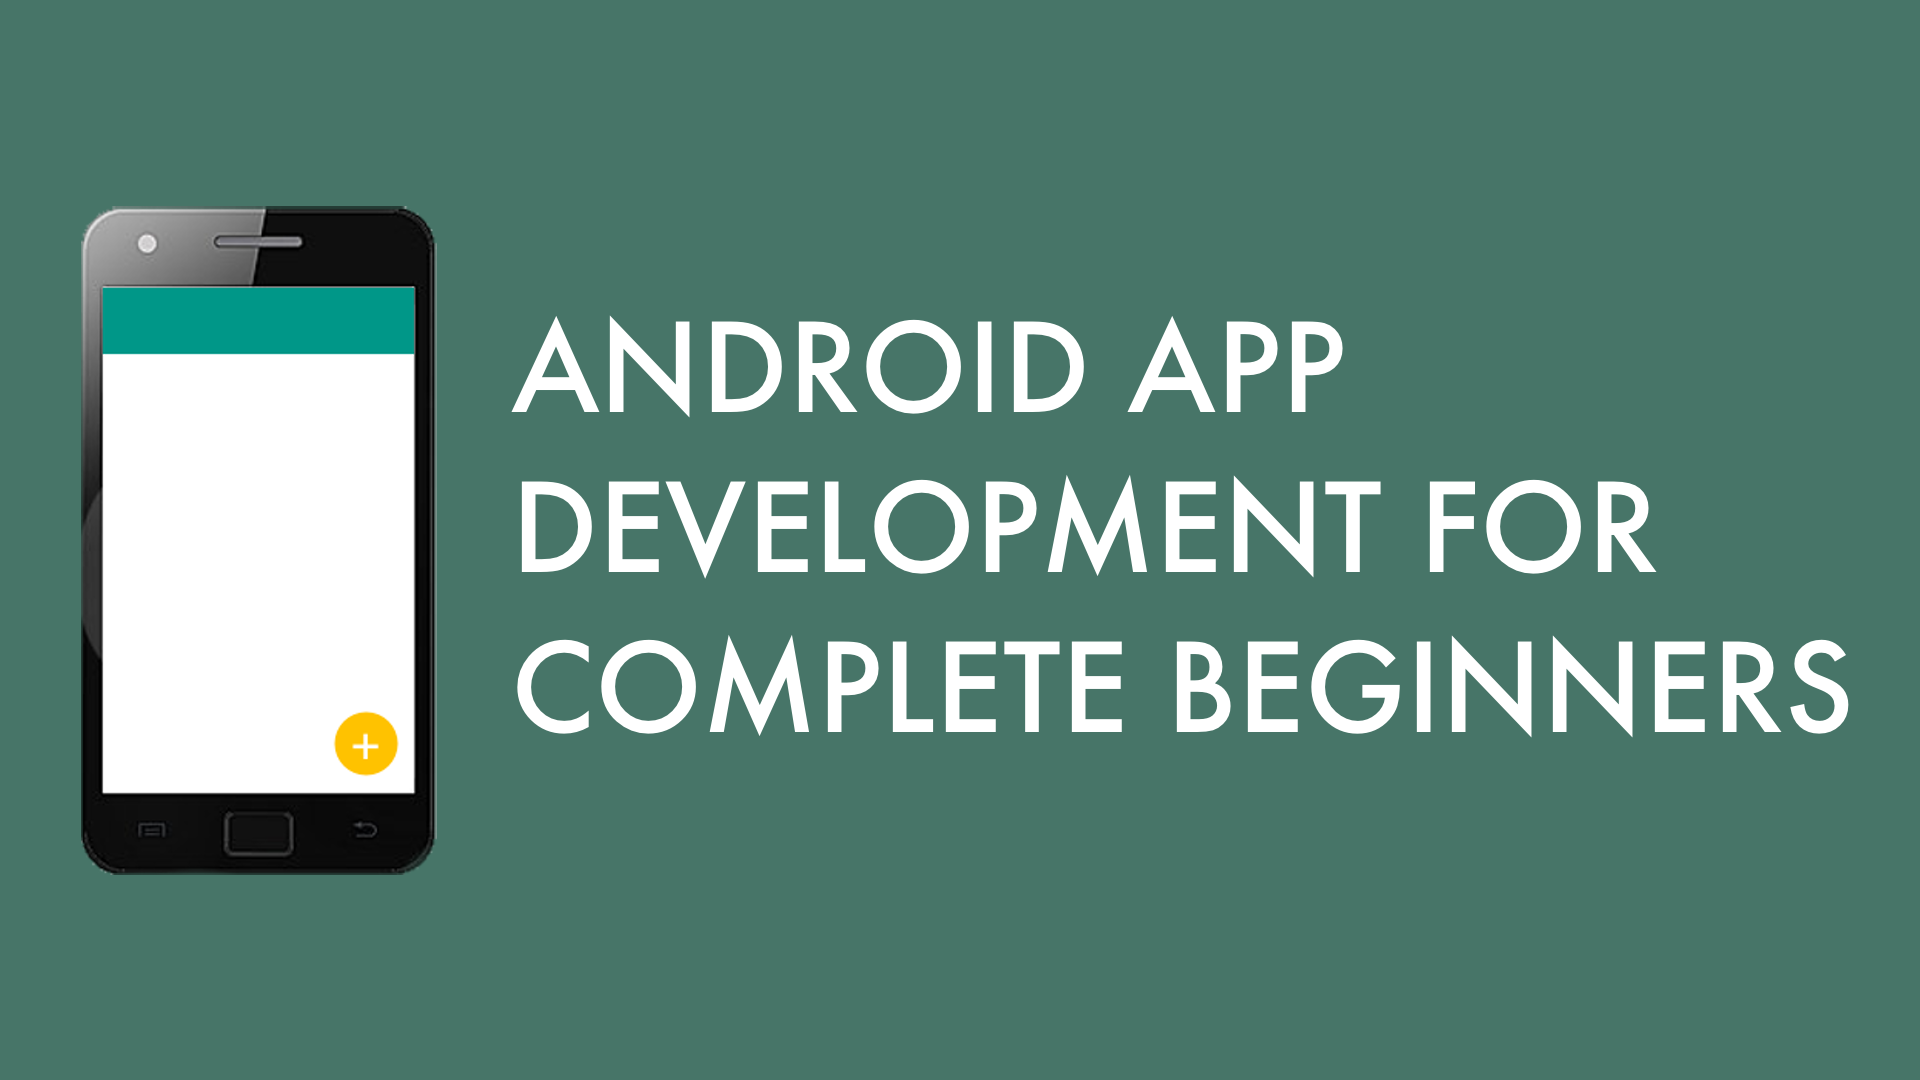 Android App Development for Complete Beginners | Lee Falin | Skillshare